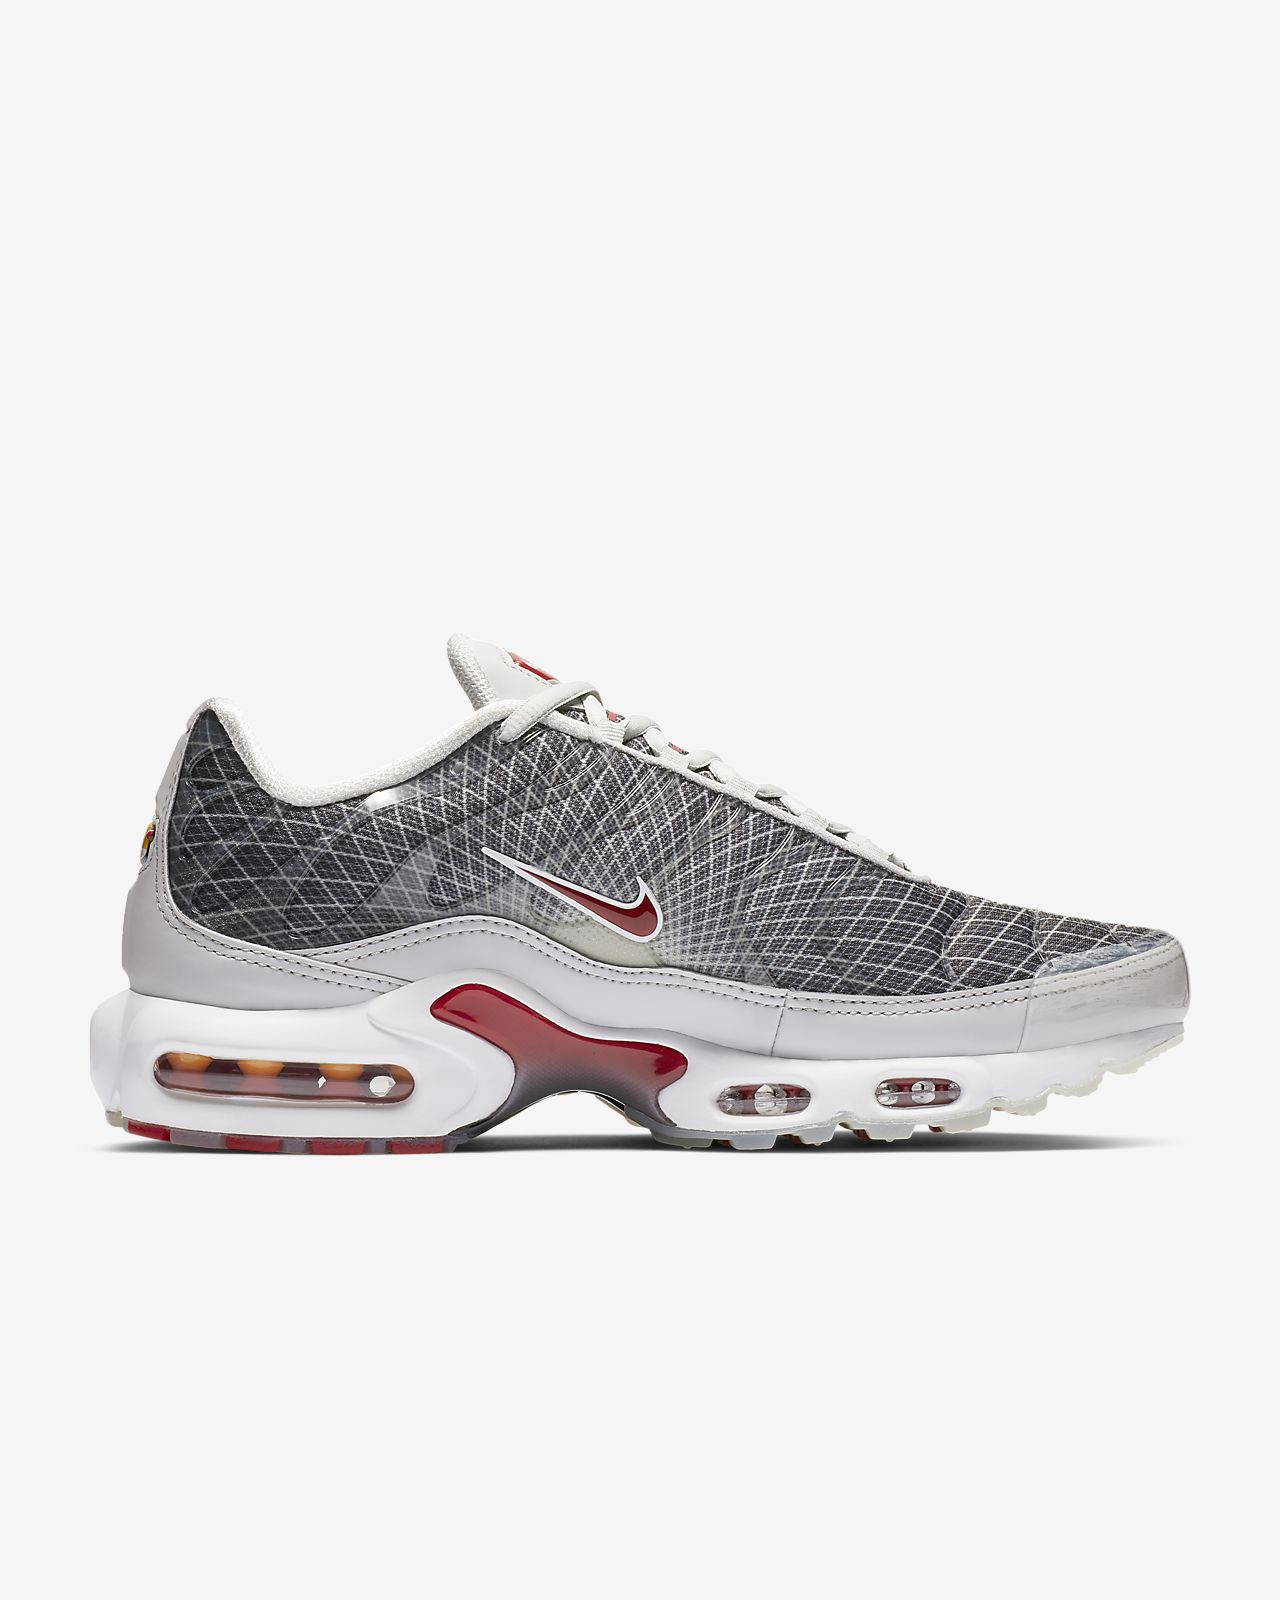 promo code a84c5 561b2 Nike Air Max Plus OG Shoe